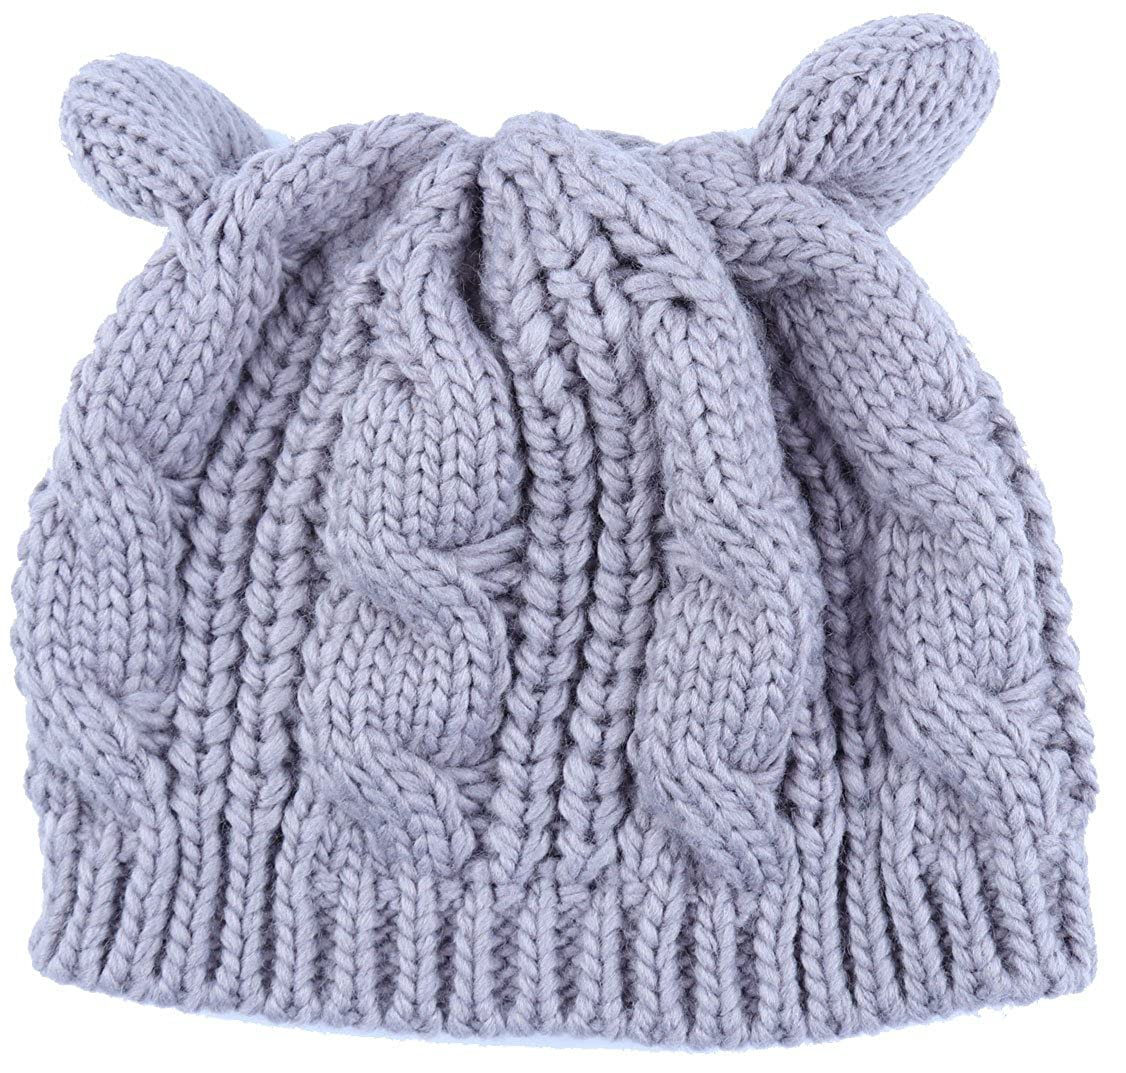 6811628f86b7f Womens Winter Thick Cable Knit Beanie Hat Cat Ear Crochet Braided Knit Caps